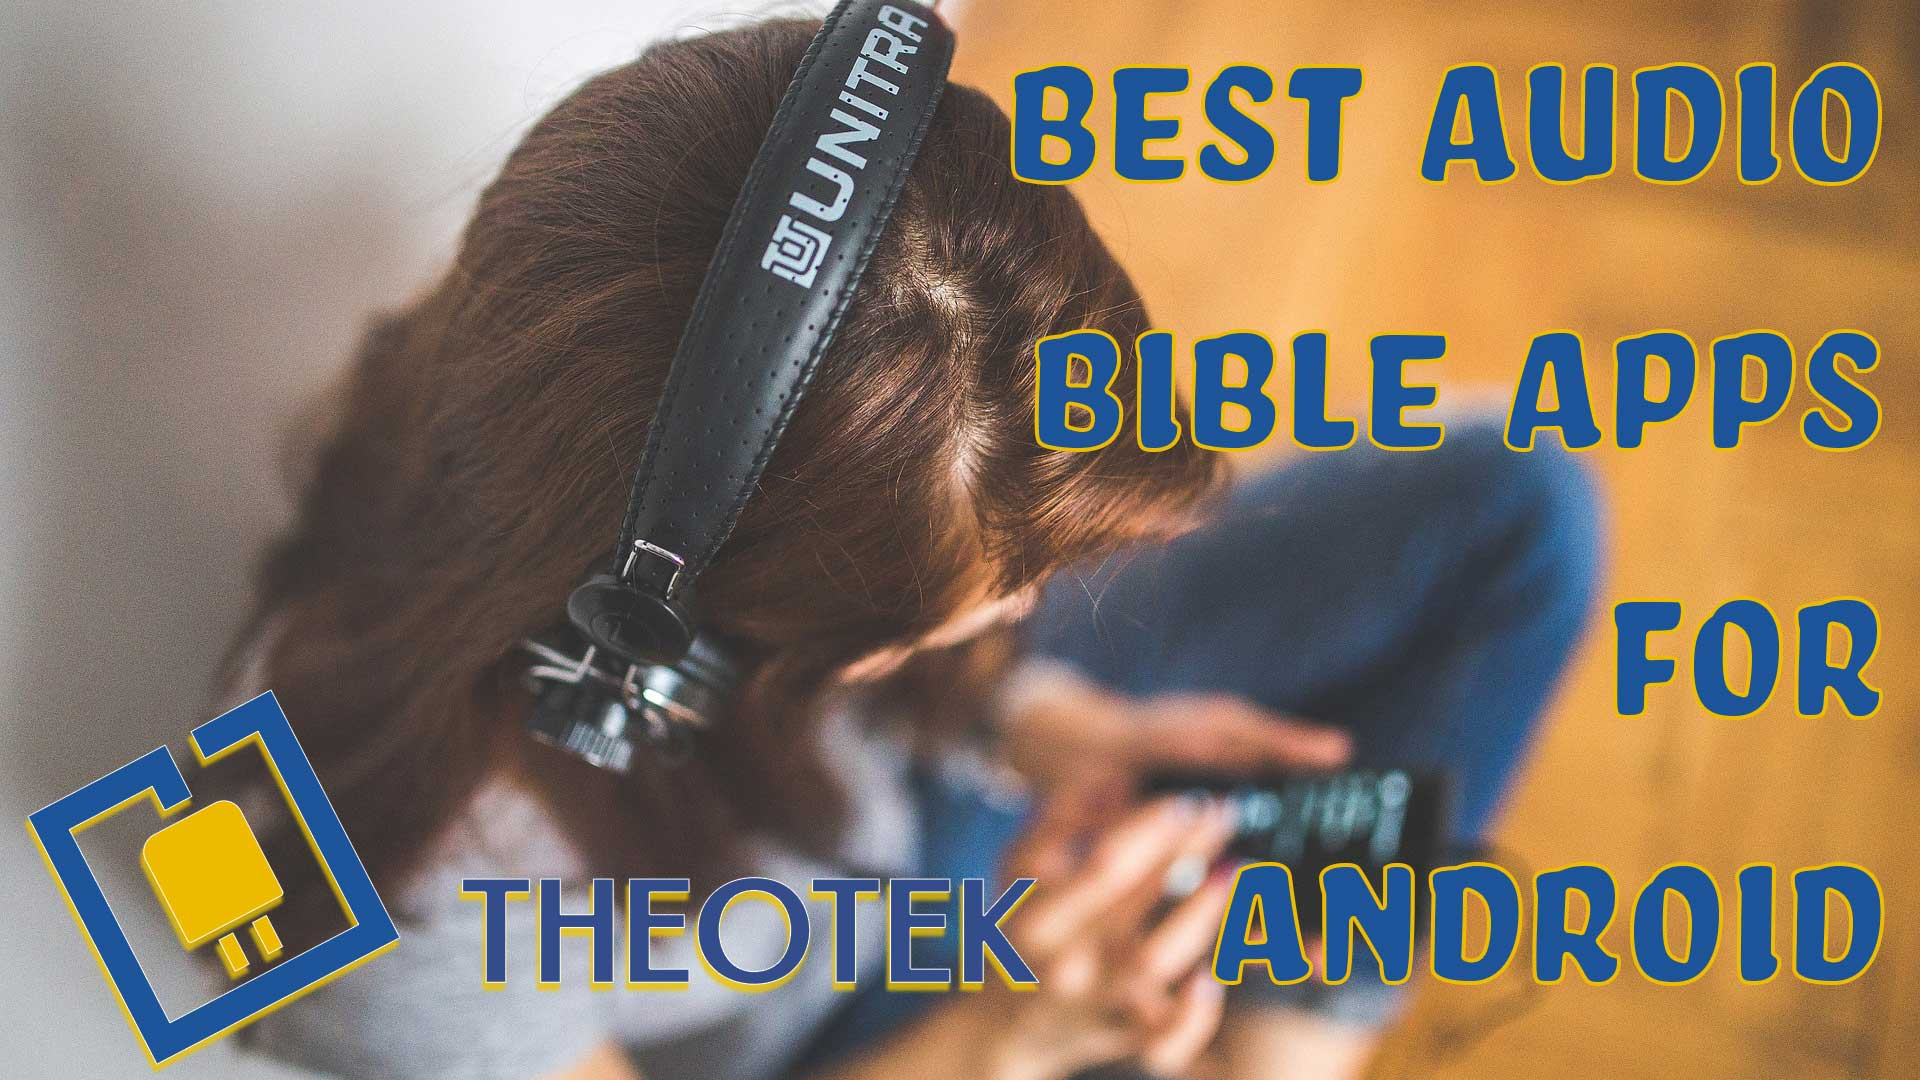 best audio bible apps for andoird